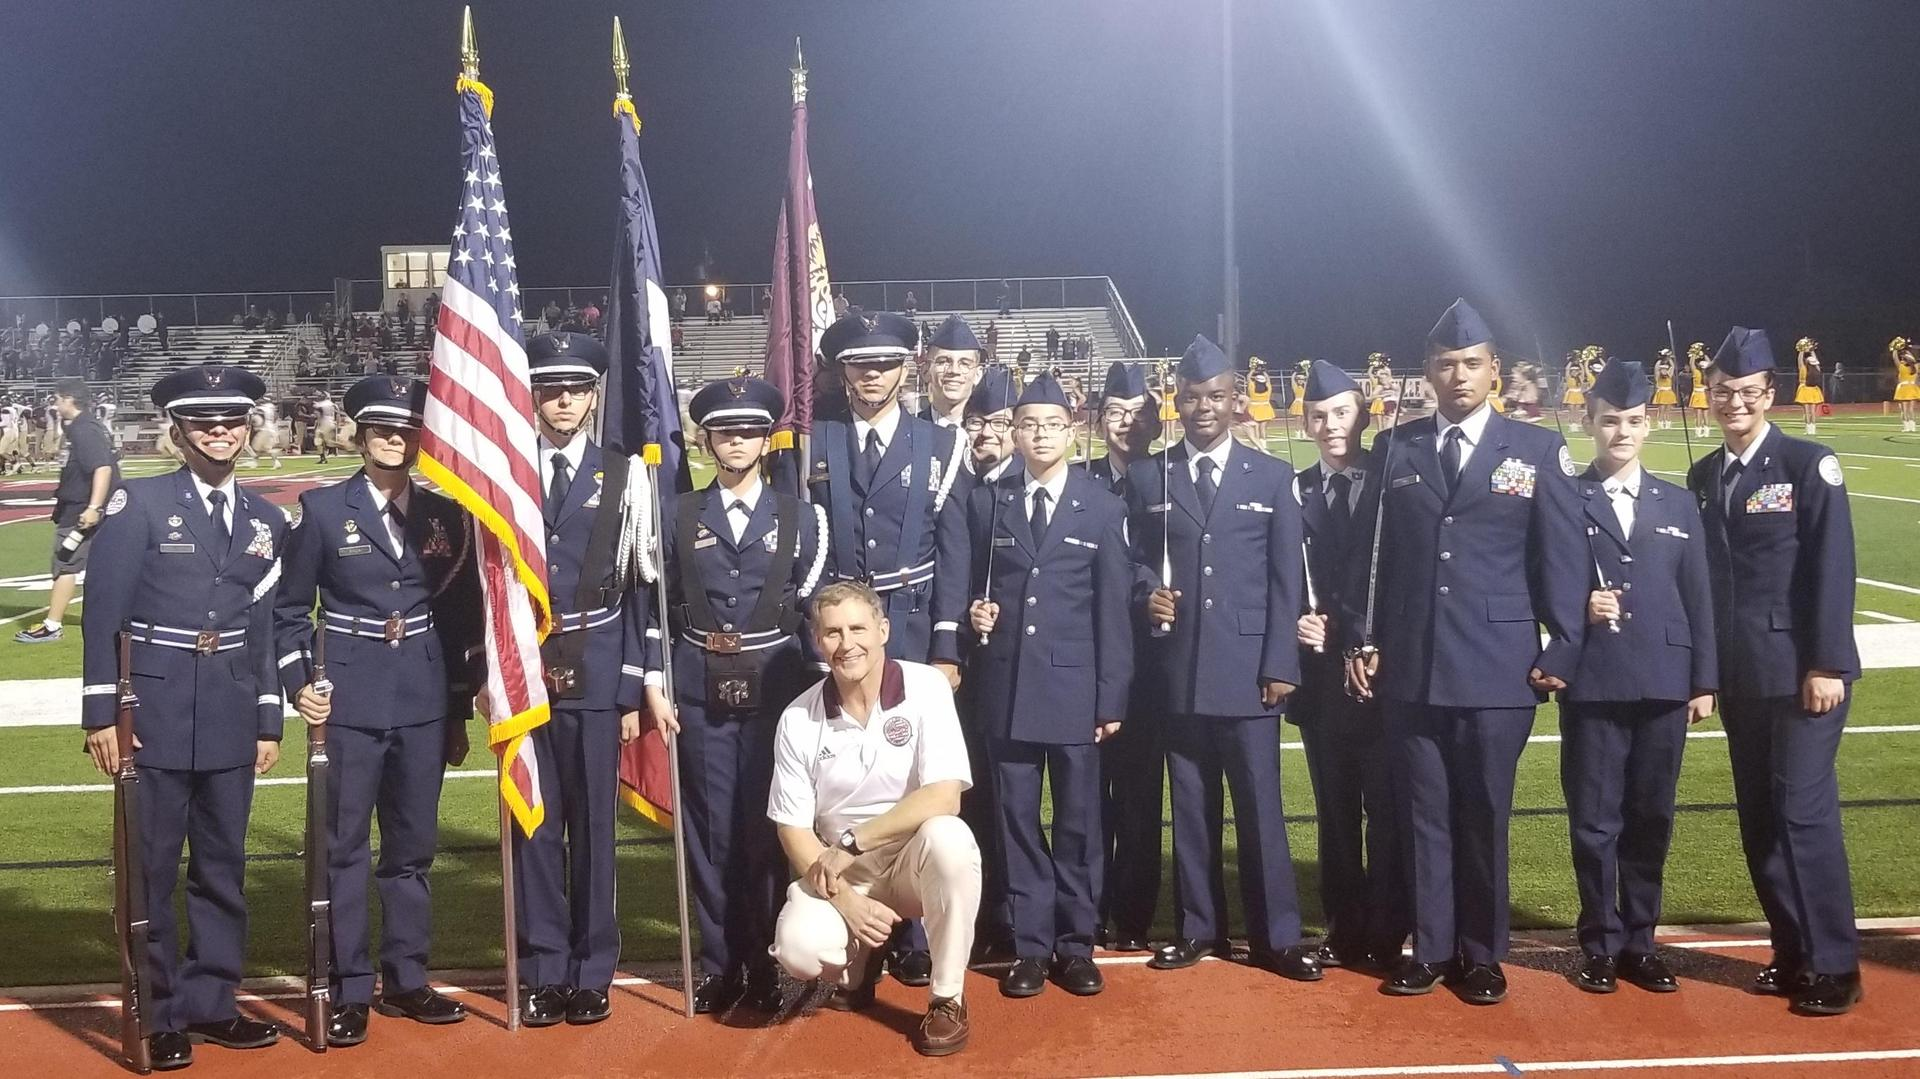 ROTC members with Colonel Rakel at a Tiger football game